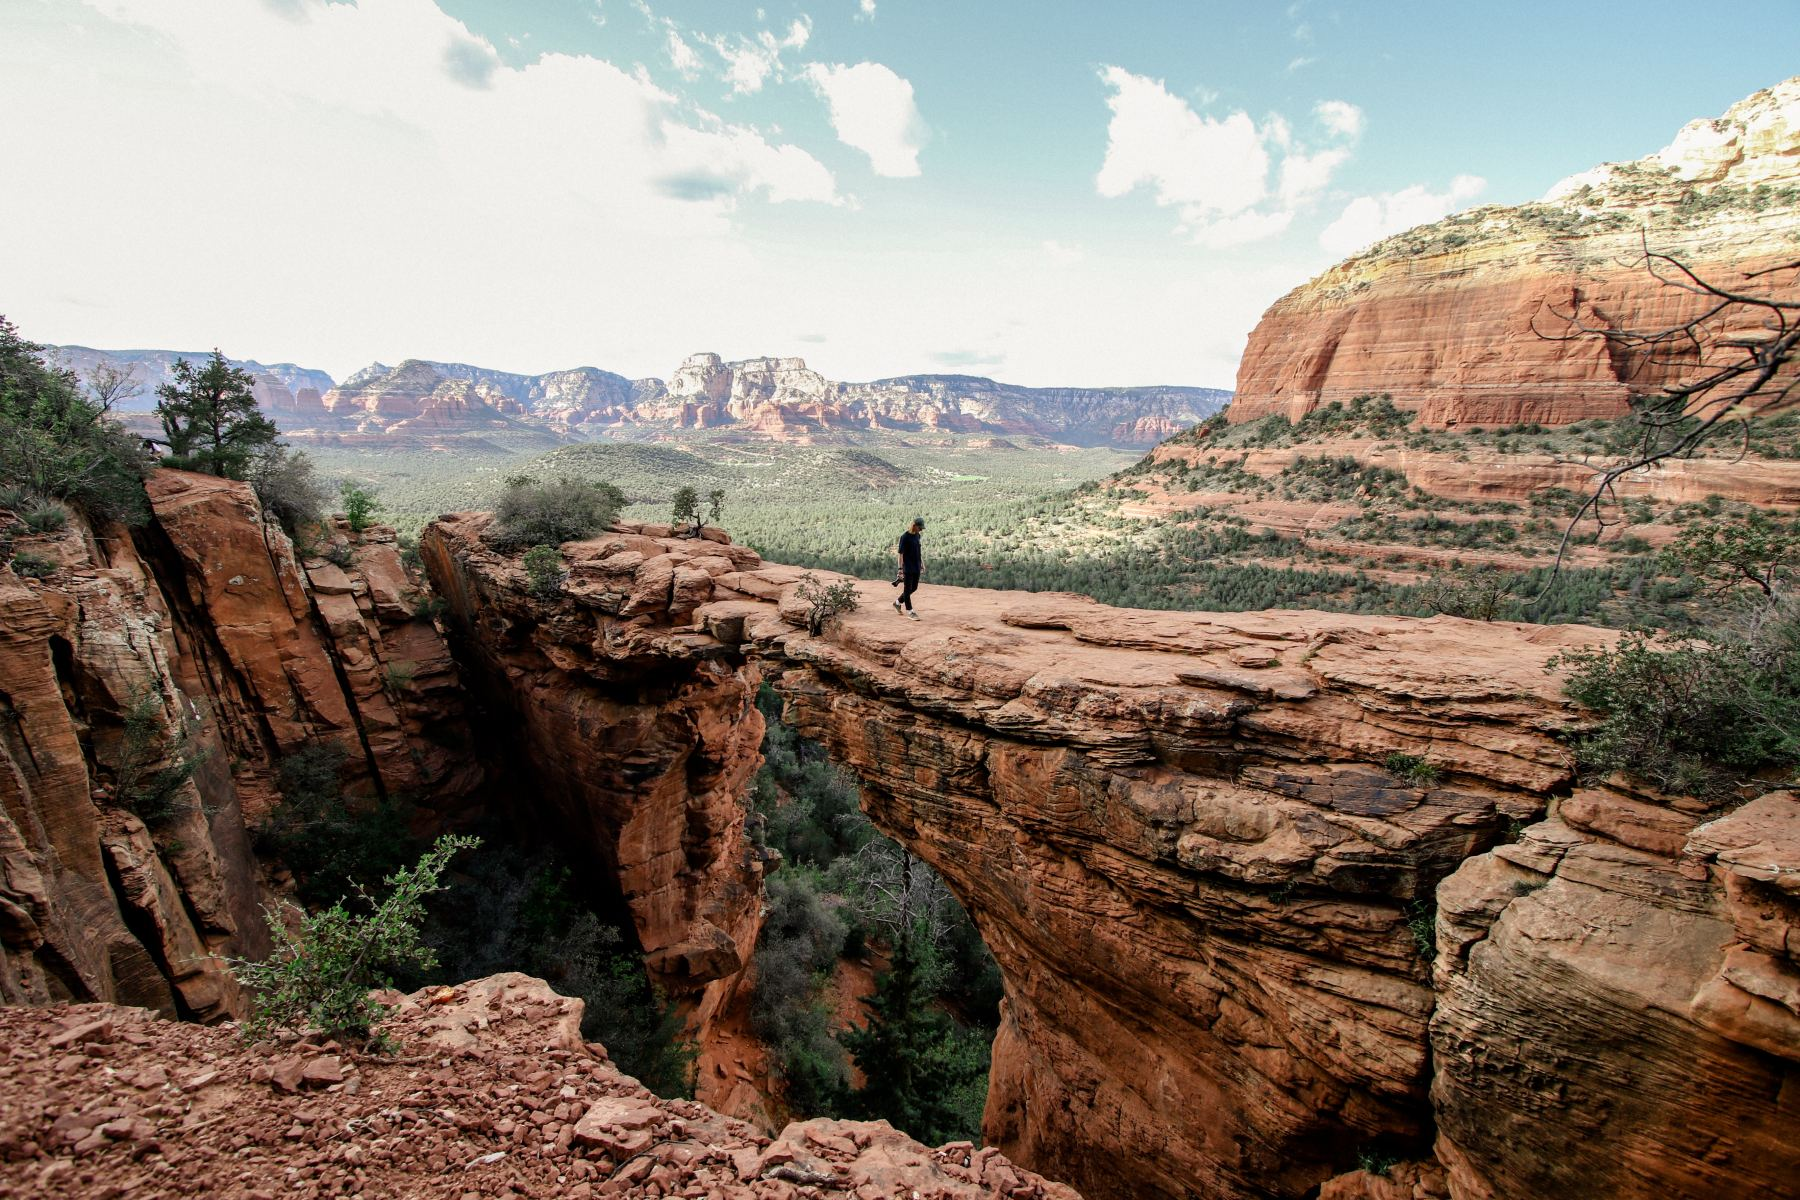 Sedona-jeremy-bishop-afLsz7ANM00-unsplash